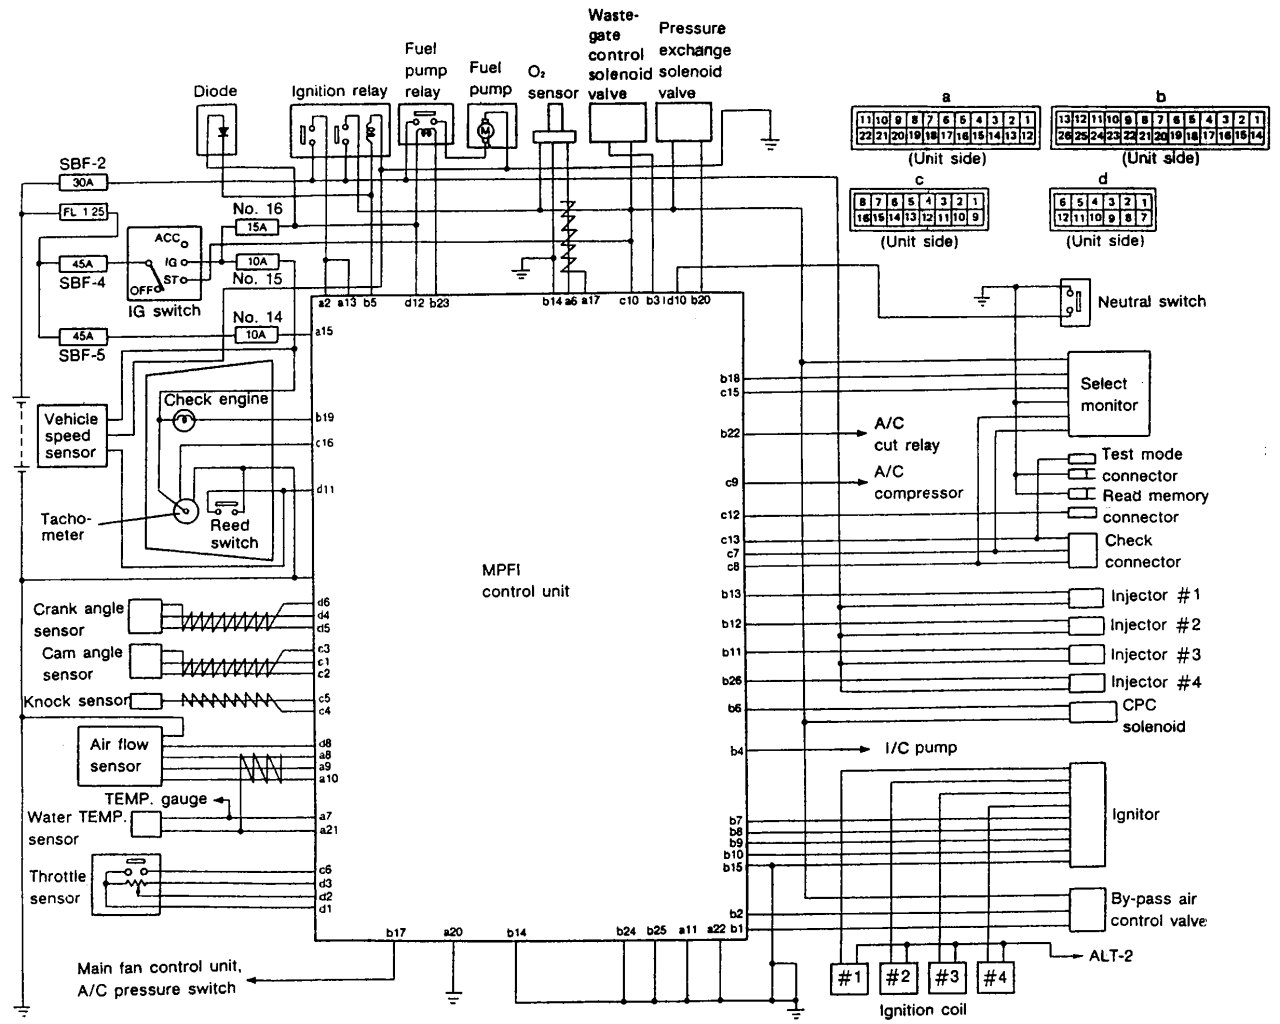 Wrx Hvac Control Wiring Diagram : 31 Wiring Diagram Images